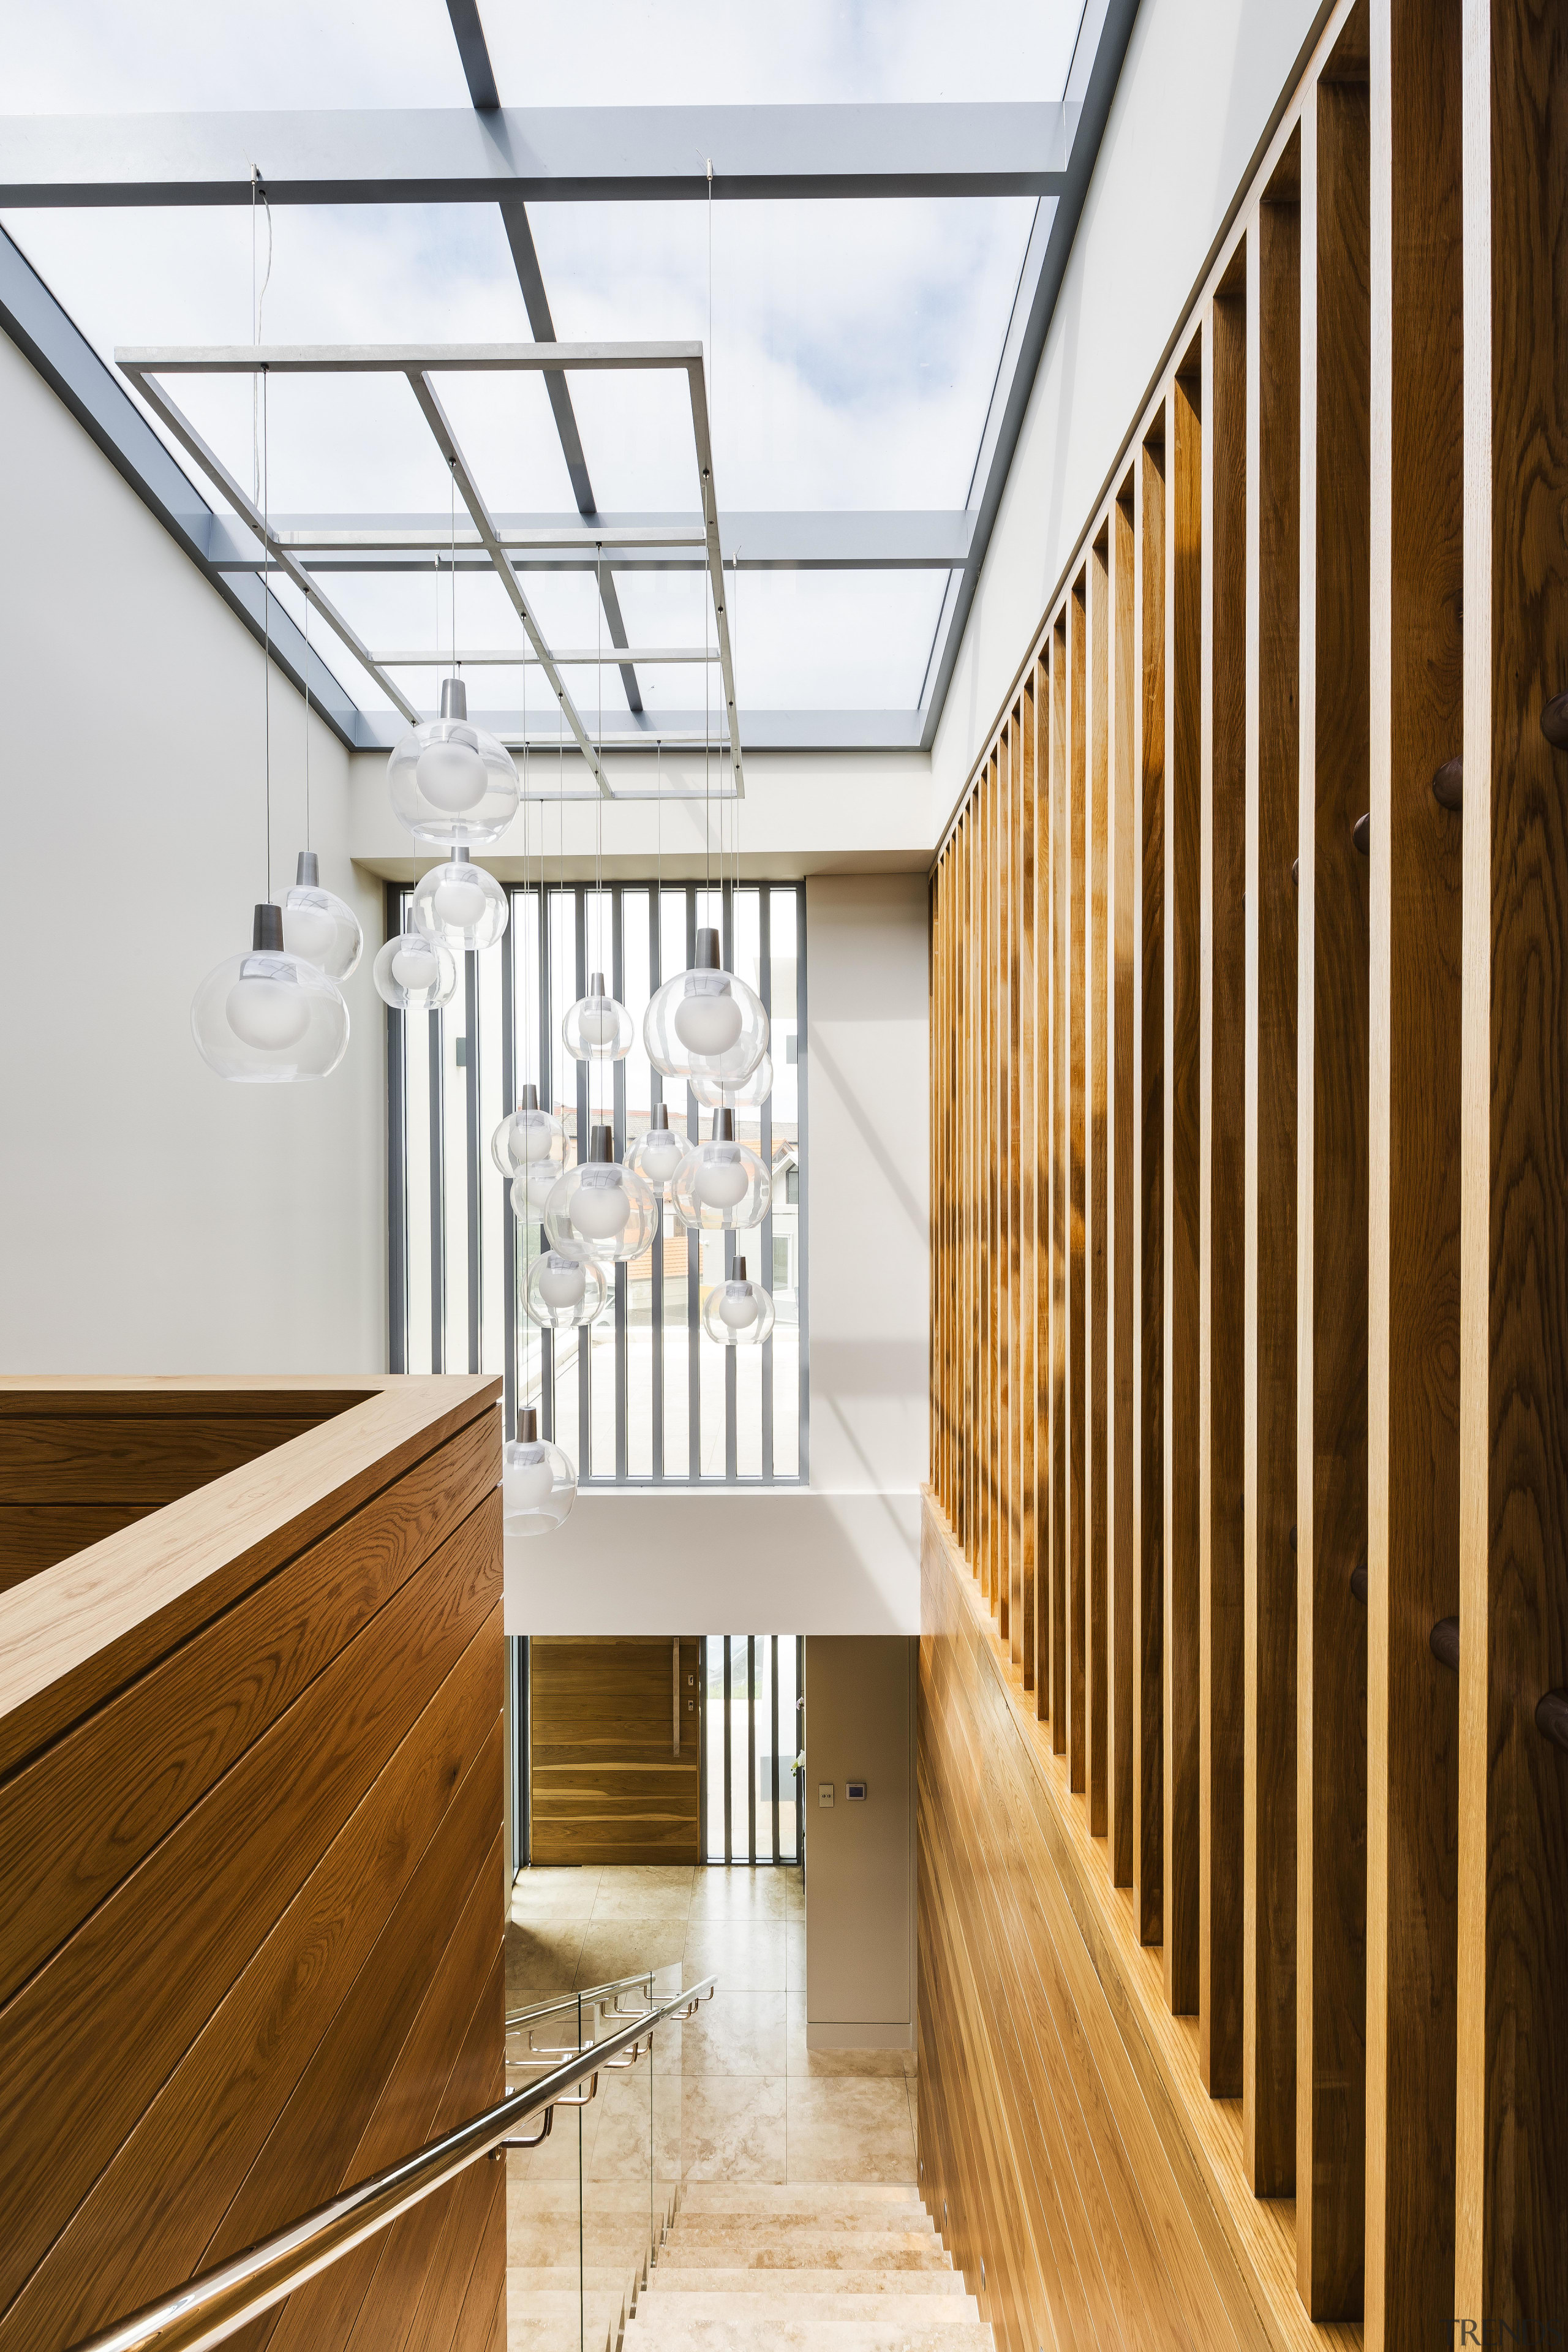 The double-height entry hall to this home includes architecture, handrail, house, interior design, stairs, stairway, wood, timber, entranceway, skylights, cantilevered stairway, Giles & Tribe Architects, Tida Awards